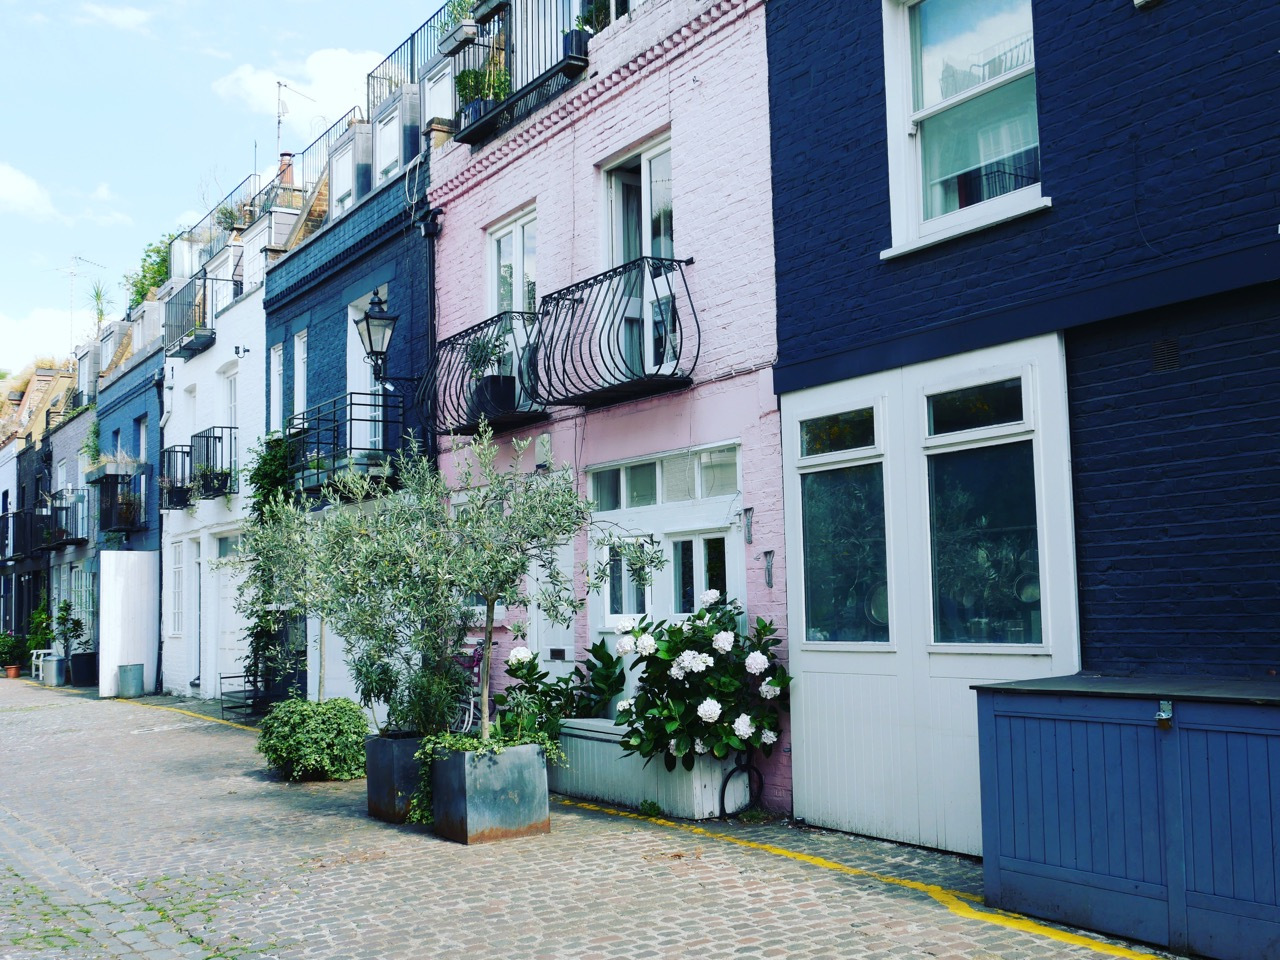 Notting Hill: An Off-Trail Afternoon Stroll